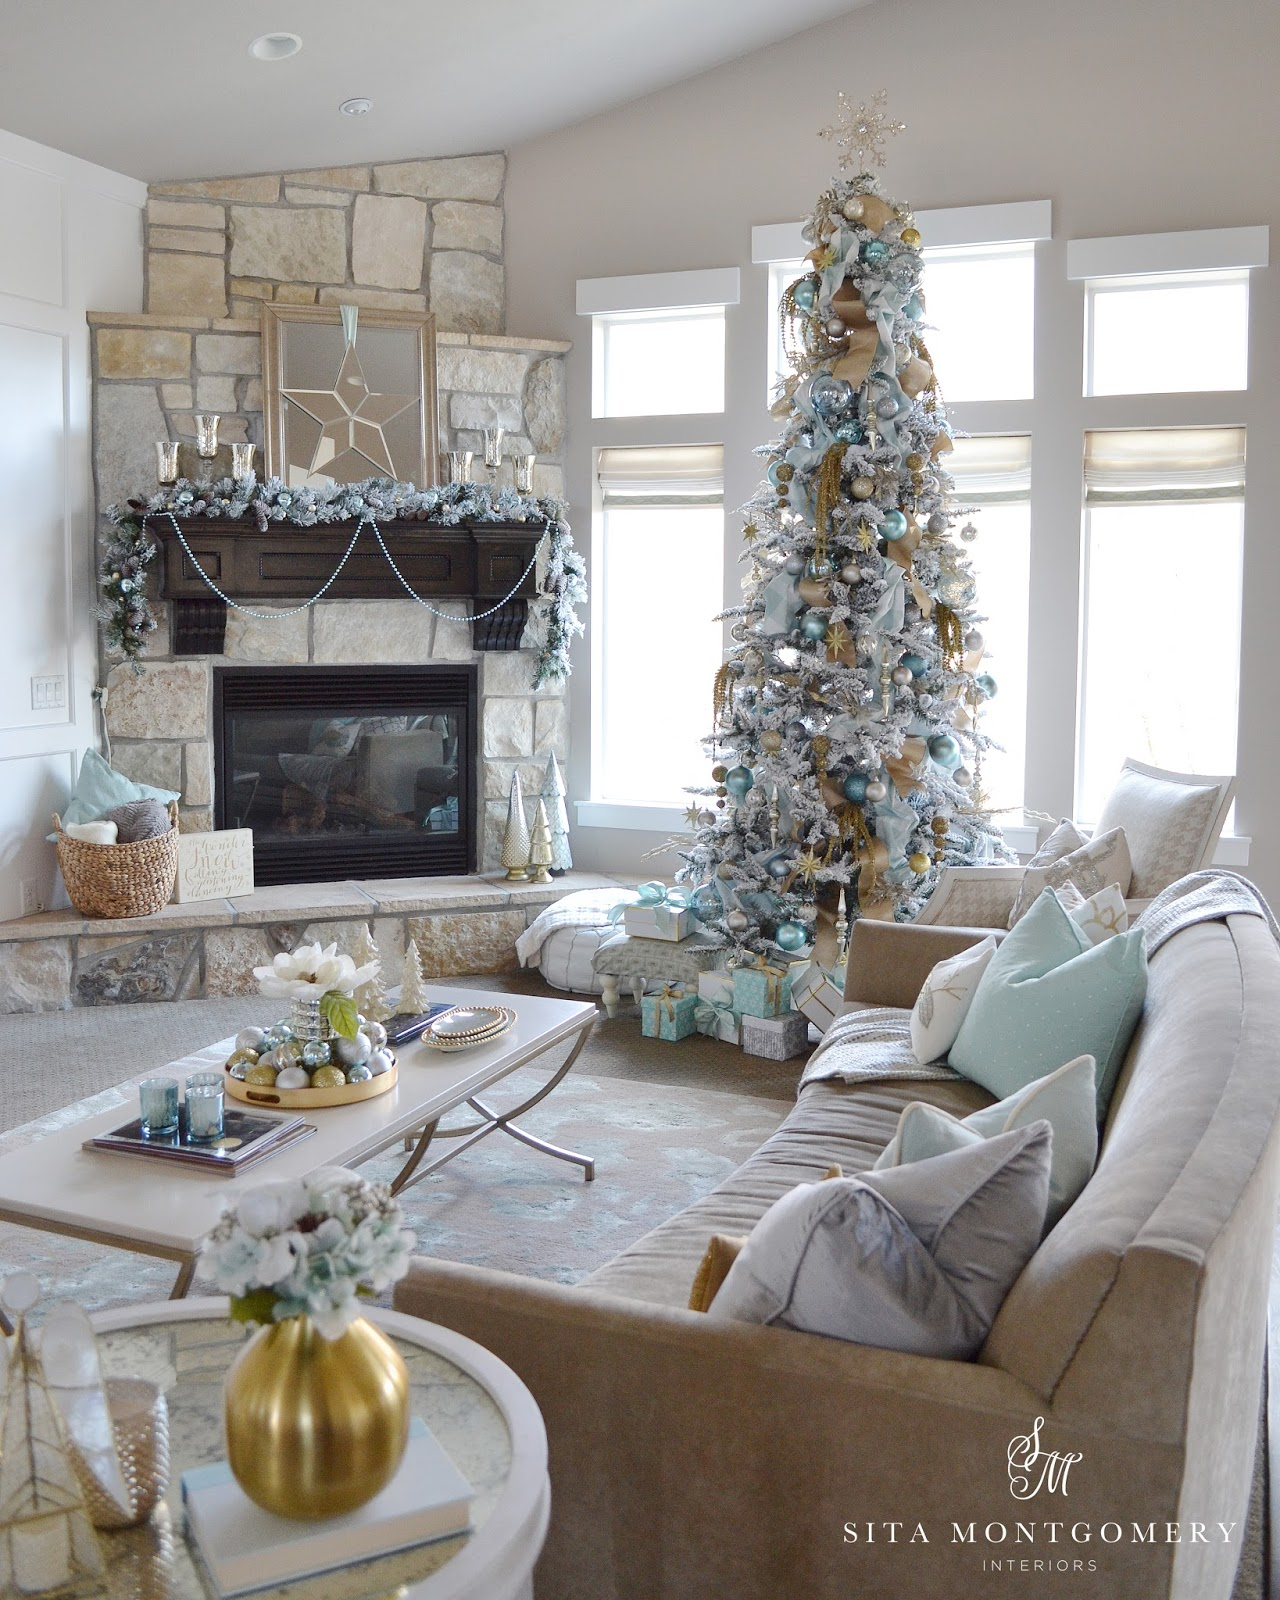 My holiday home 2015 sita montgomery interiors - Living room decorated for christmas ...